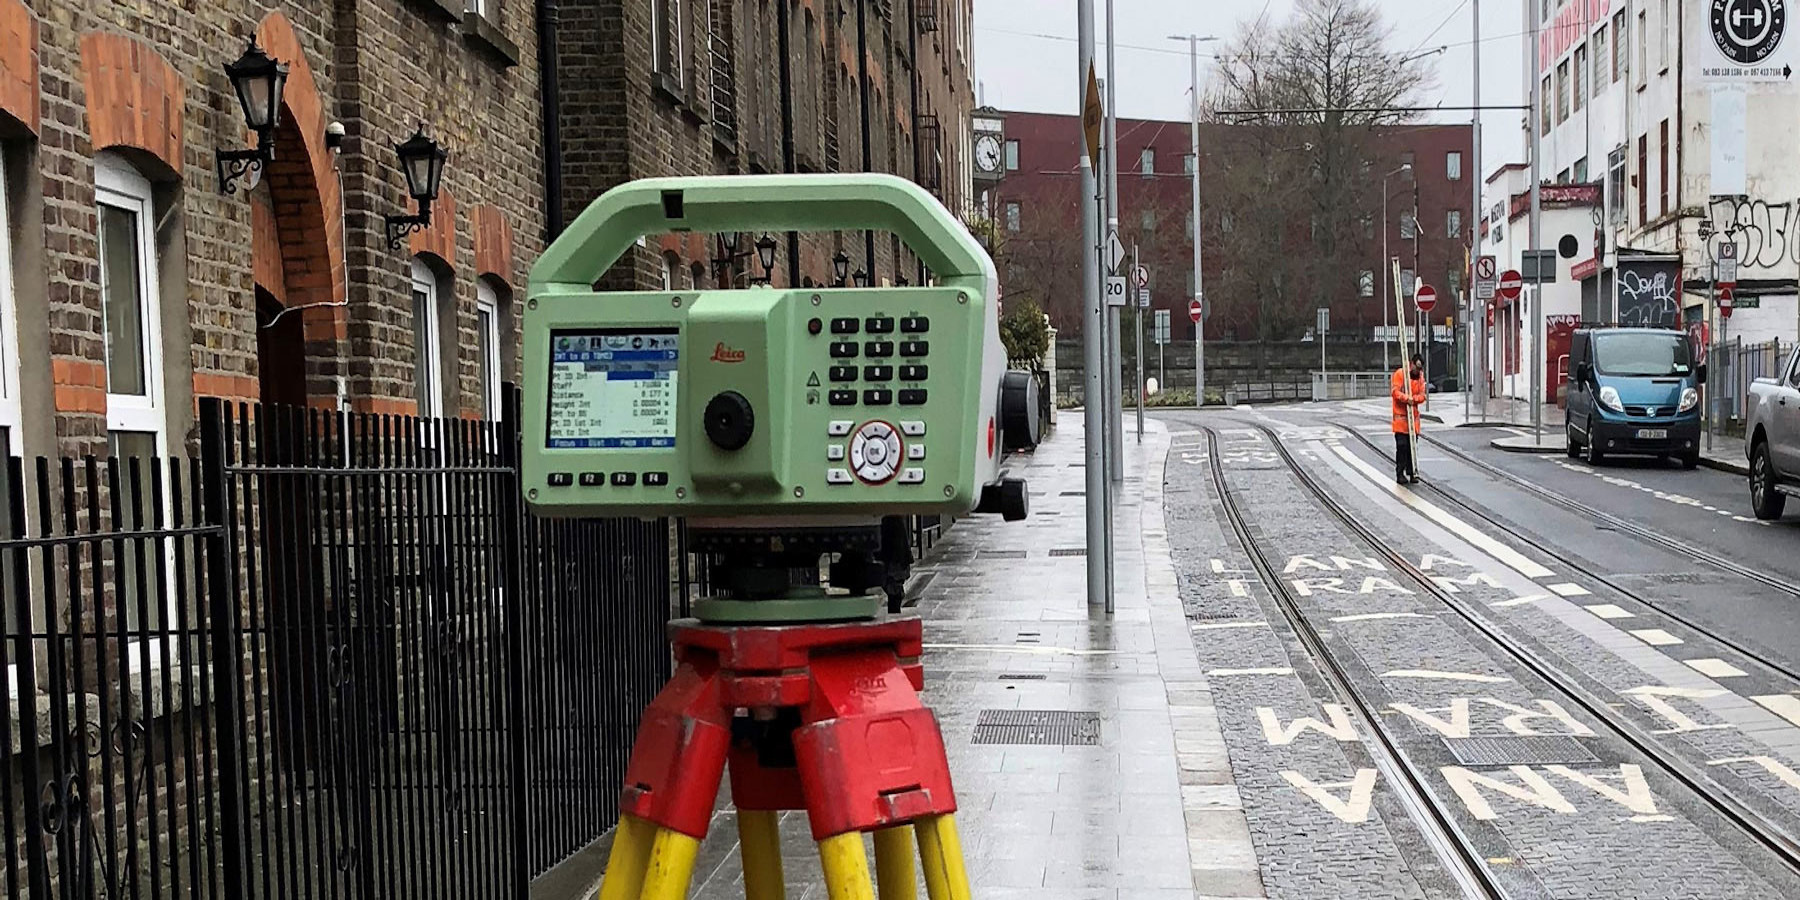 Monitoring Dublin commuters' safety Images